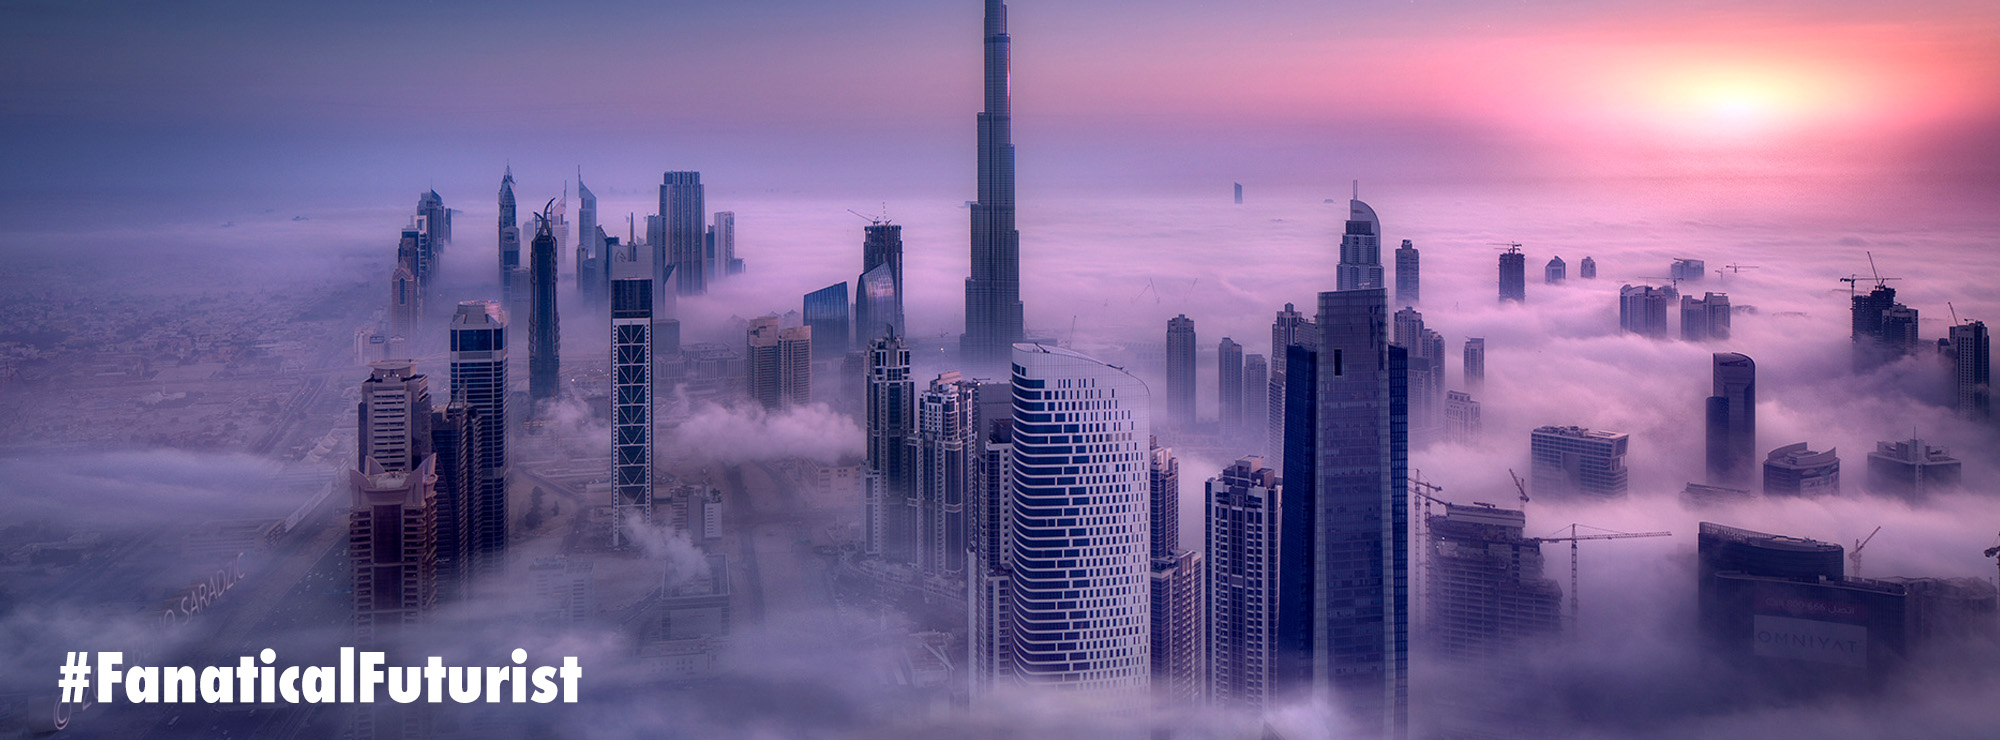 A quarter of Dubai's new buildings will be 3D printed by 2030 – Fanatical Futurist by International Keynote Speaker Matthew Griffin